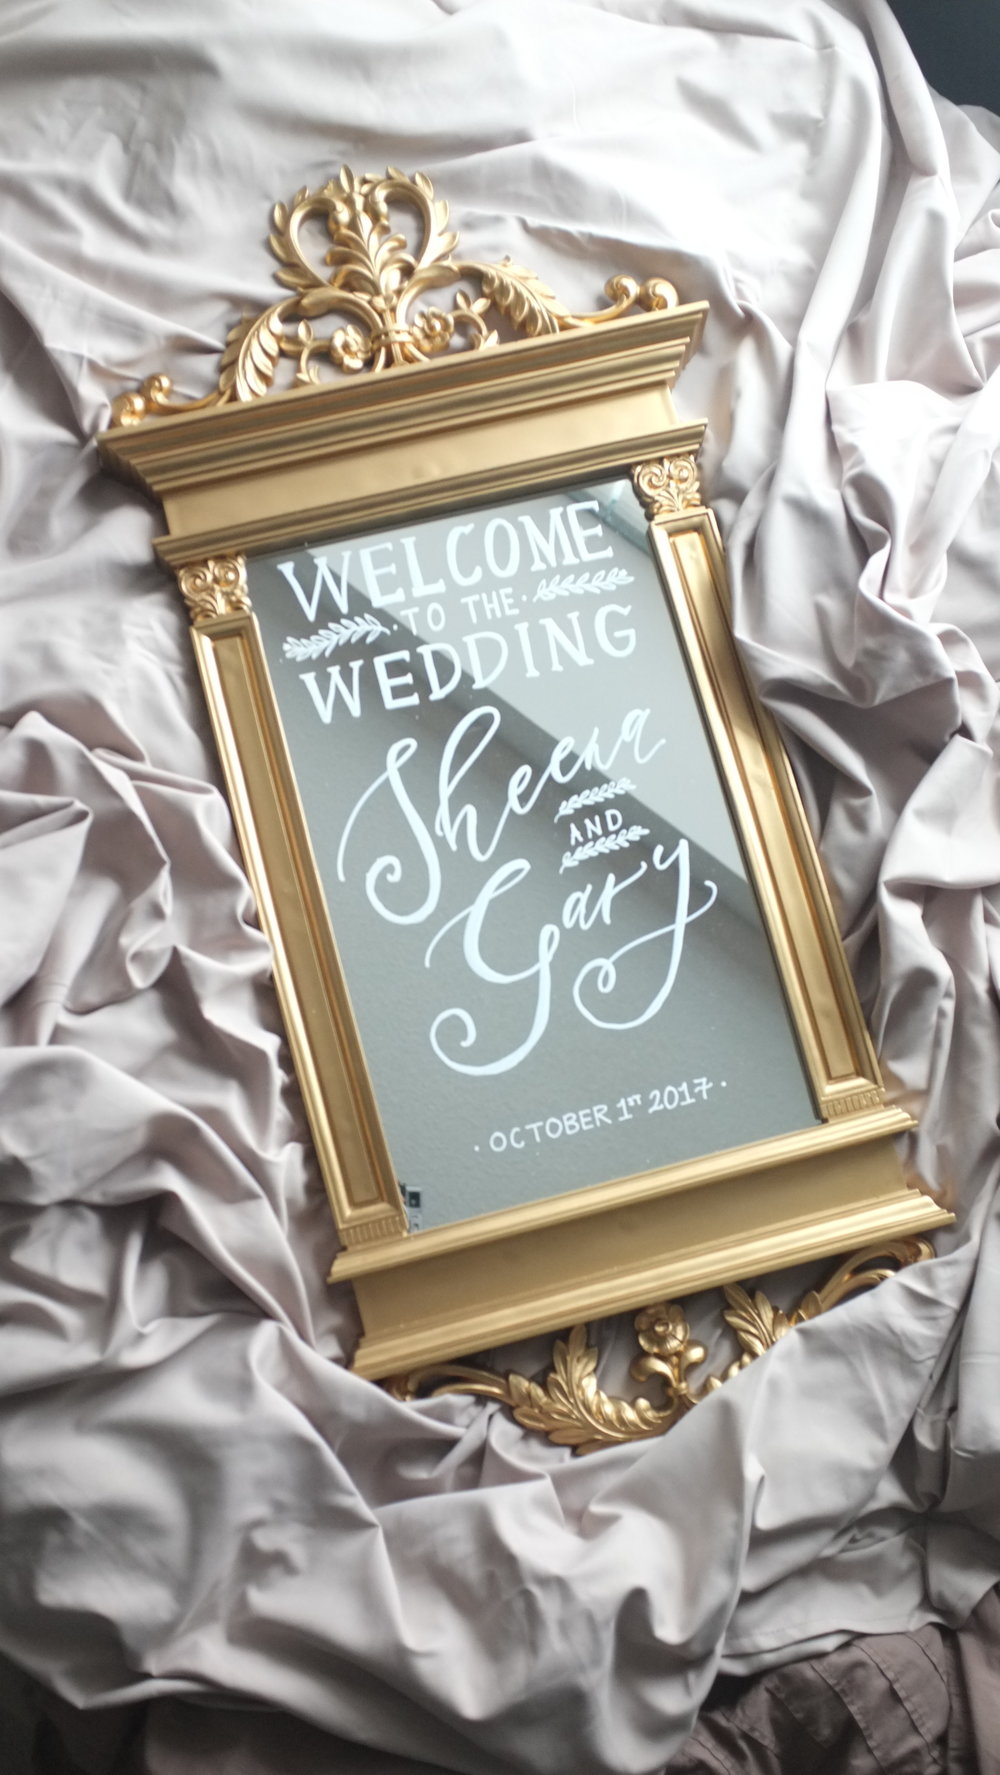 Hand calligraphed mirror welcome sign | Photography: Mandy Calligraph & Design